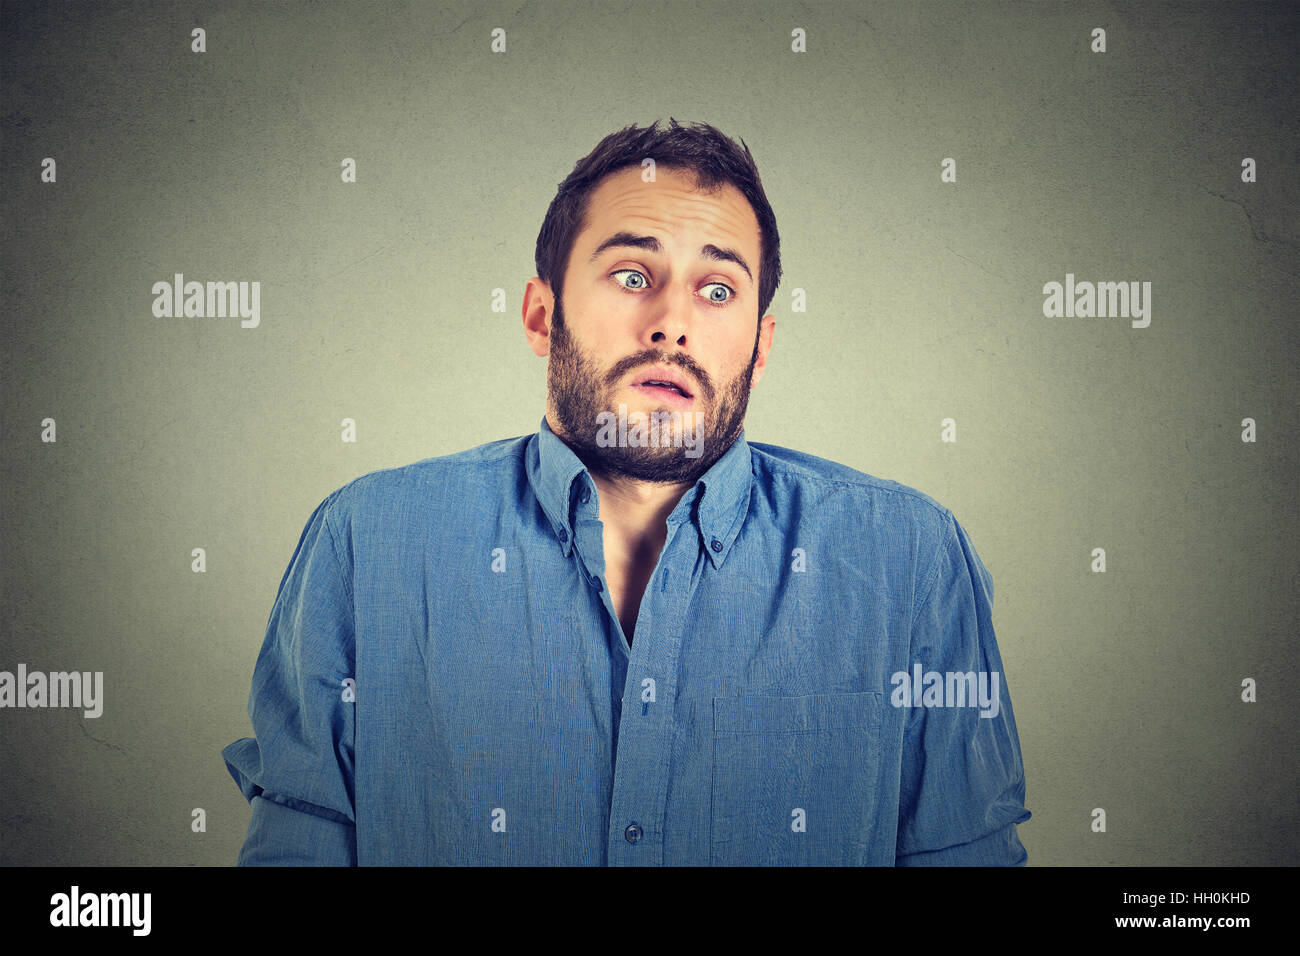 young man shrugging shoulders who cares so what I don't know gesture isolated on gray wall background. Body - Stock Image